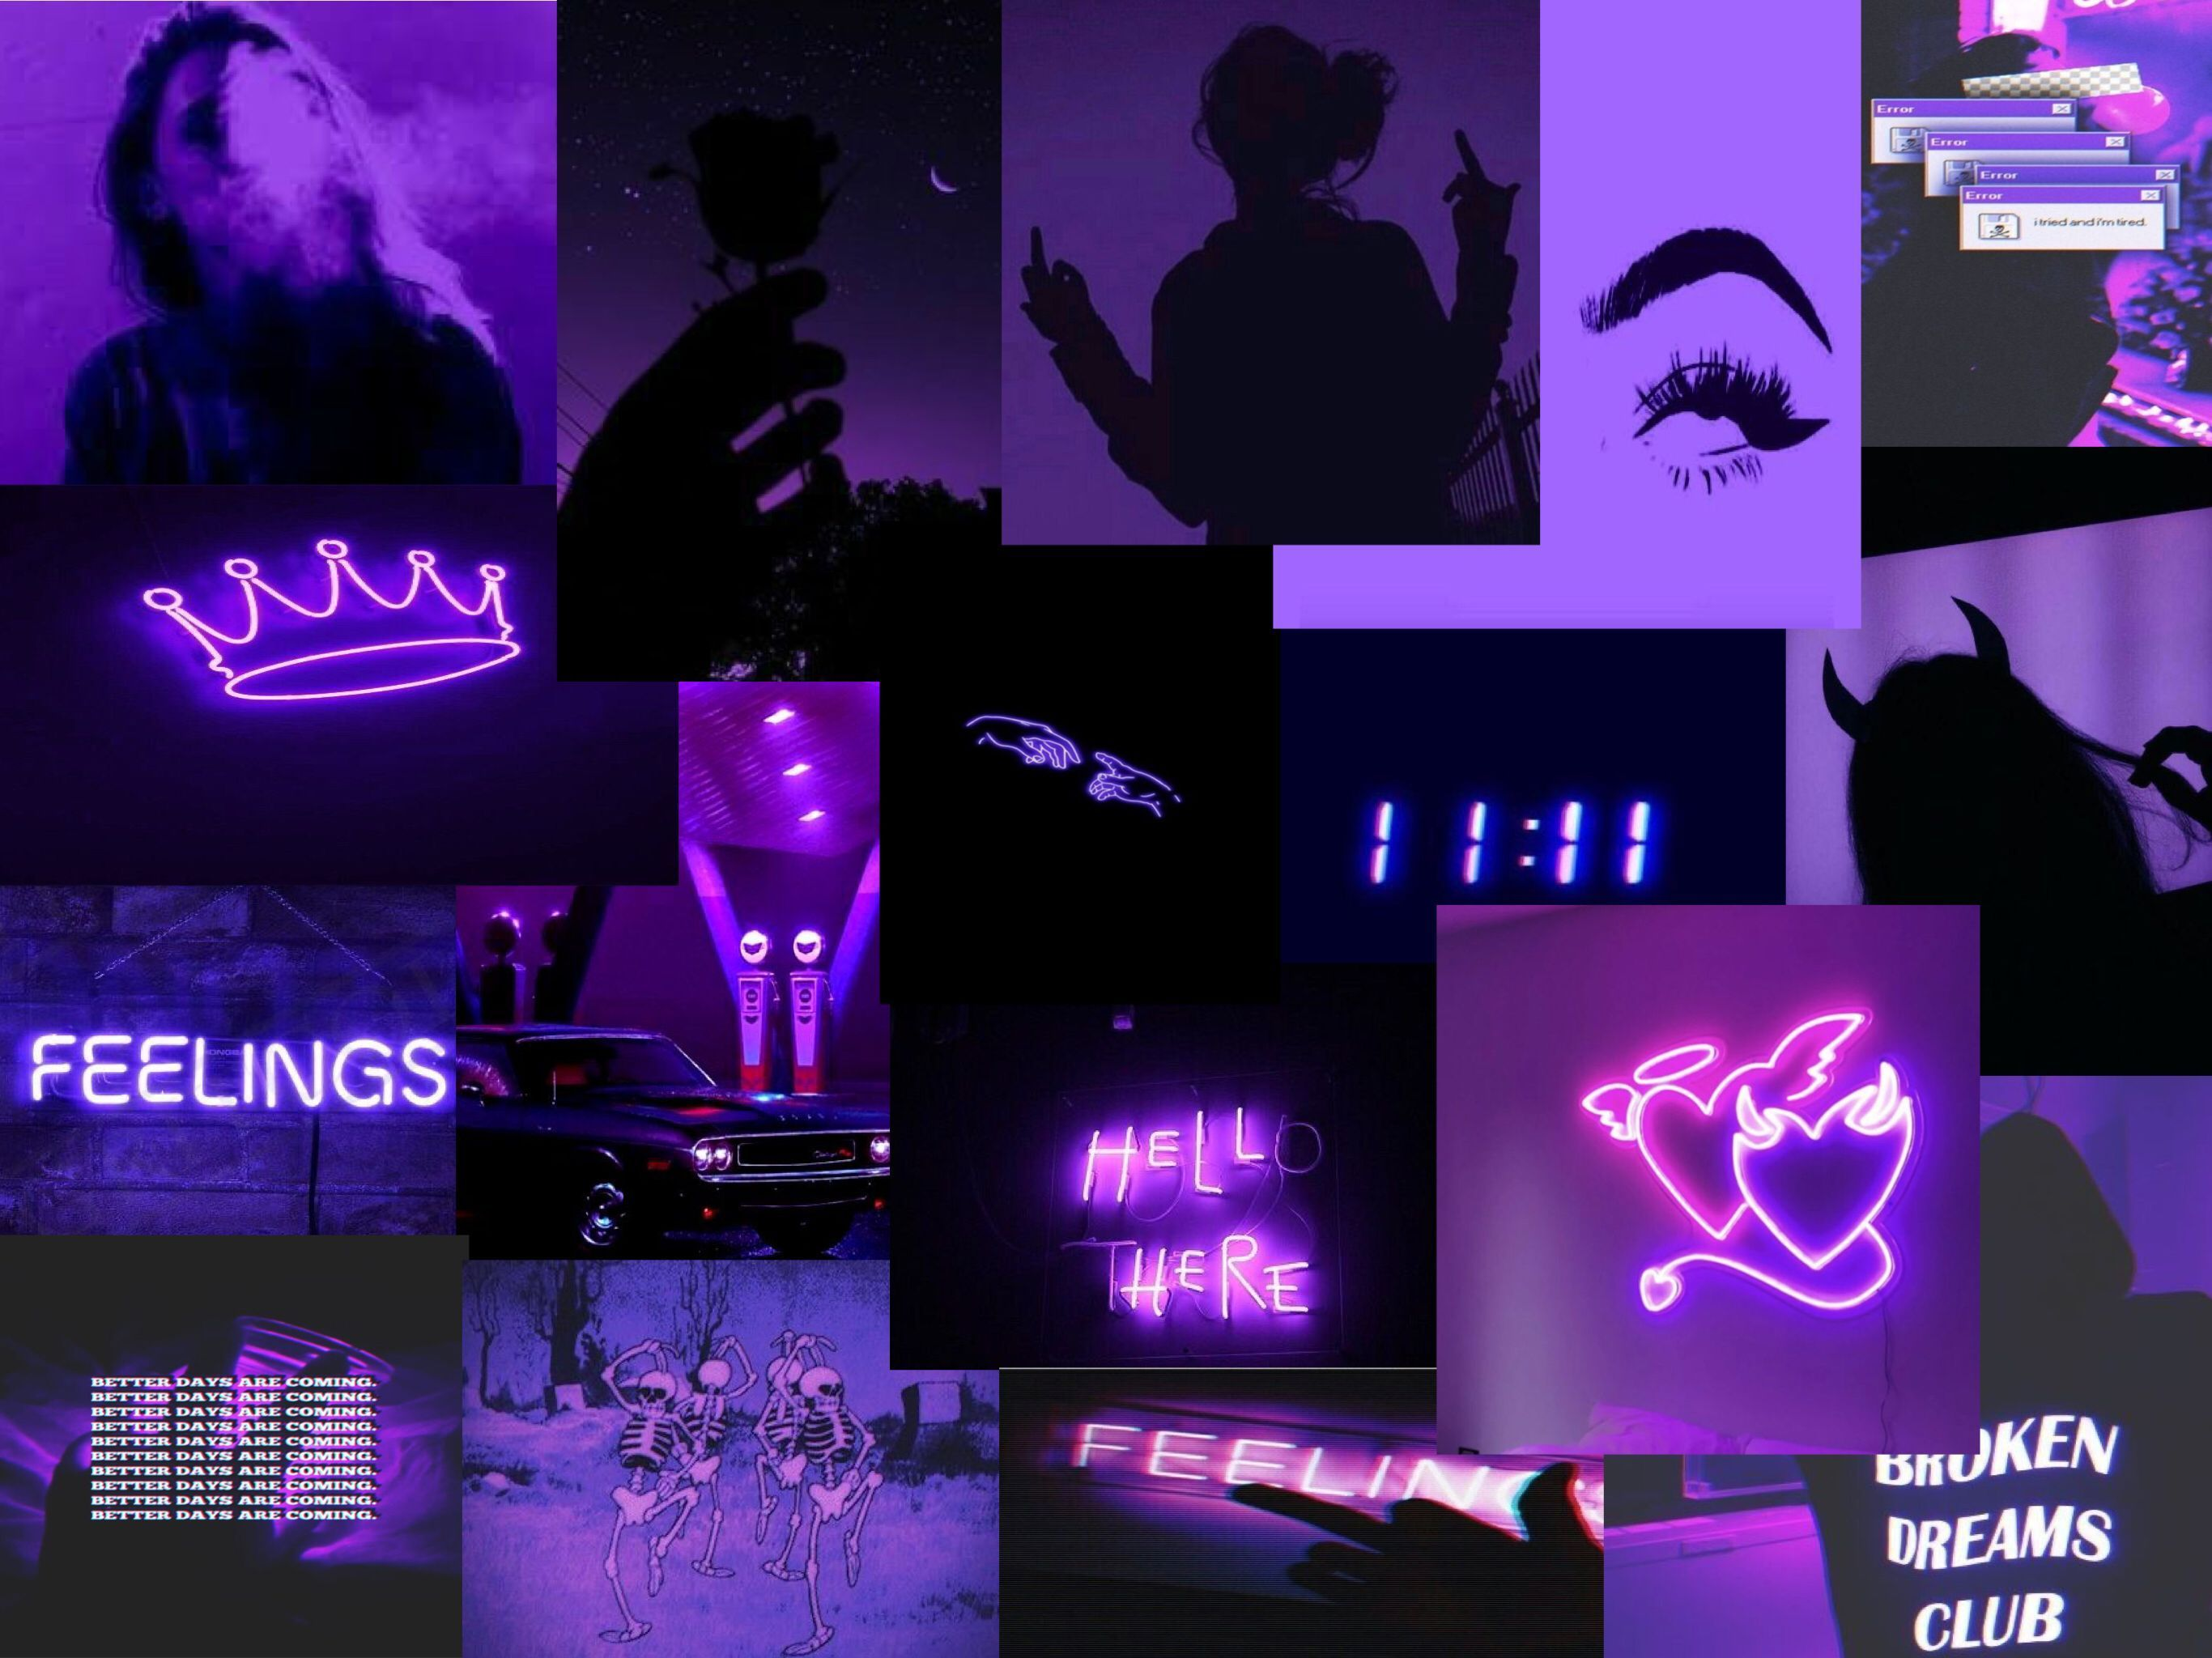 Tons of awesome purple aesthetic pc wallpapers to download for free. iPad pro wallpaper   Aesthetic iphone wallpaper, Iphone